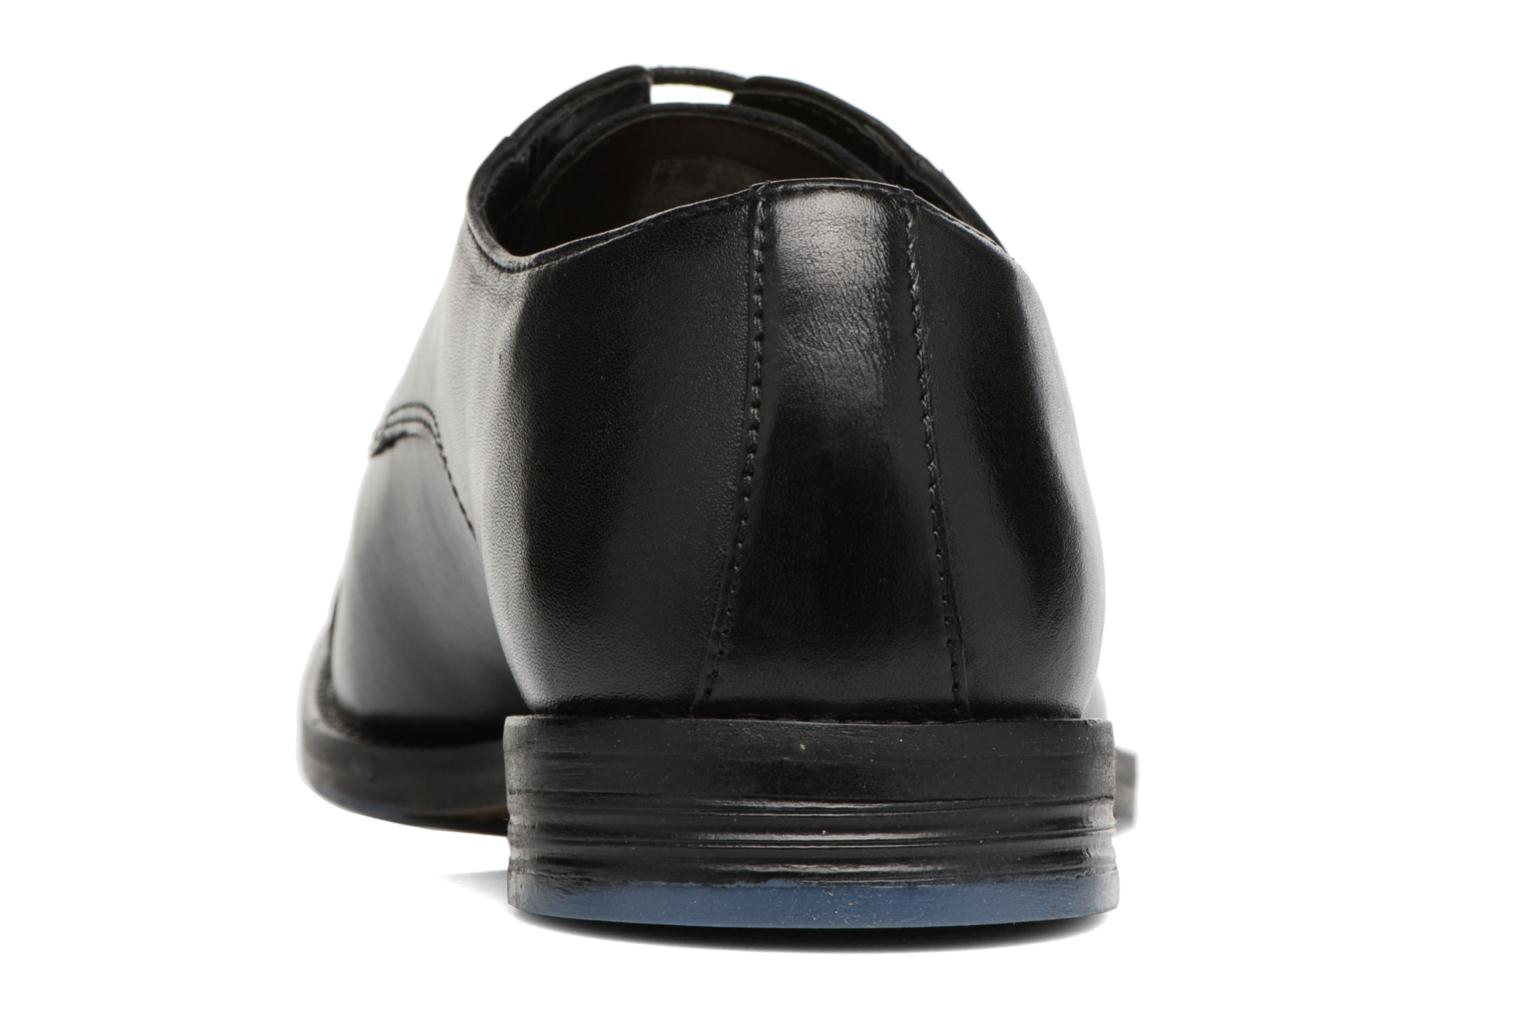 Prangley Cap Black leather